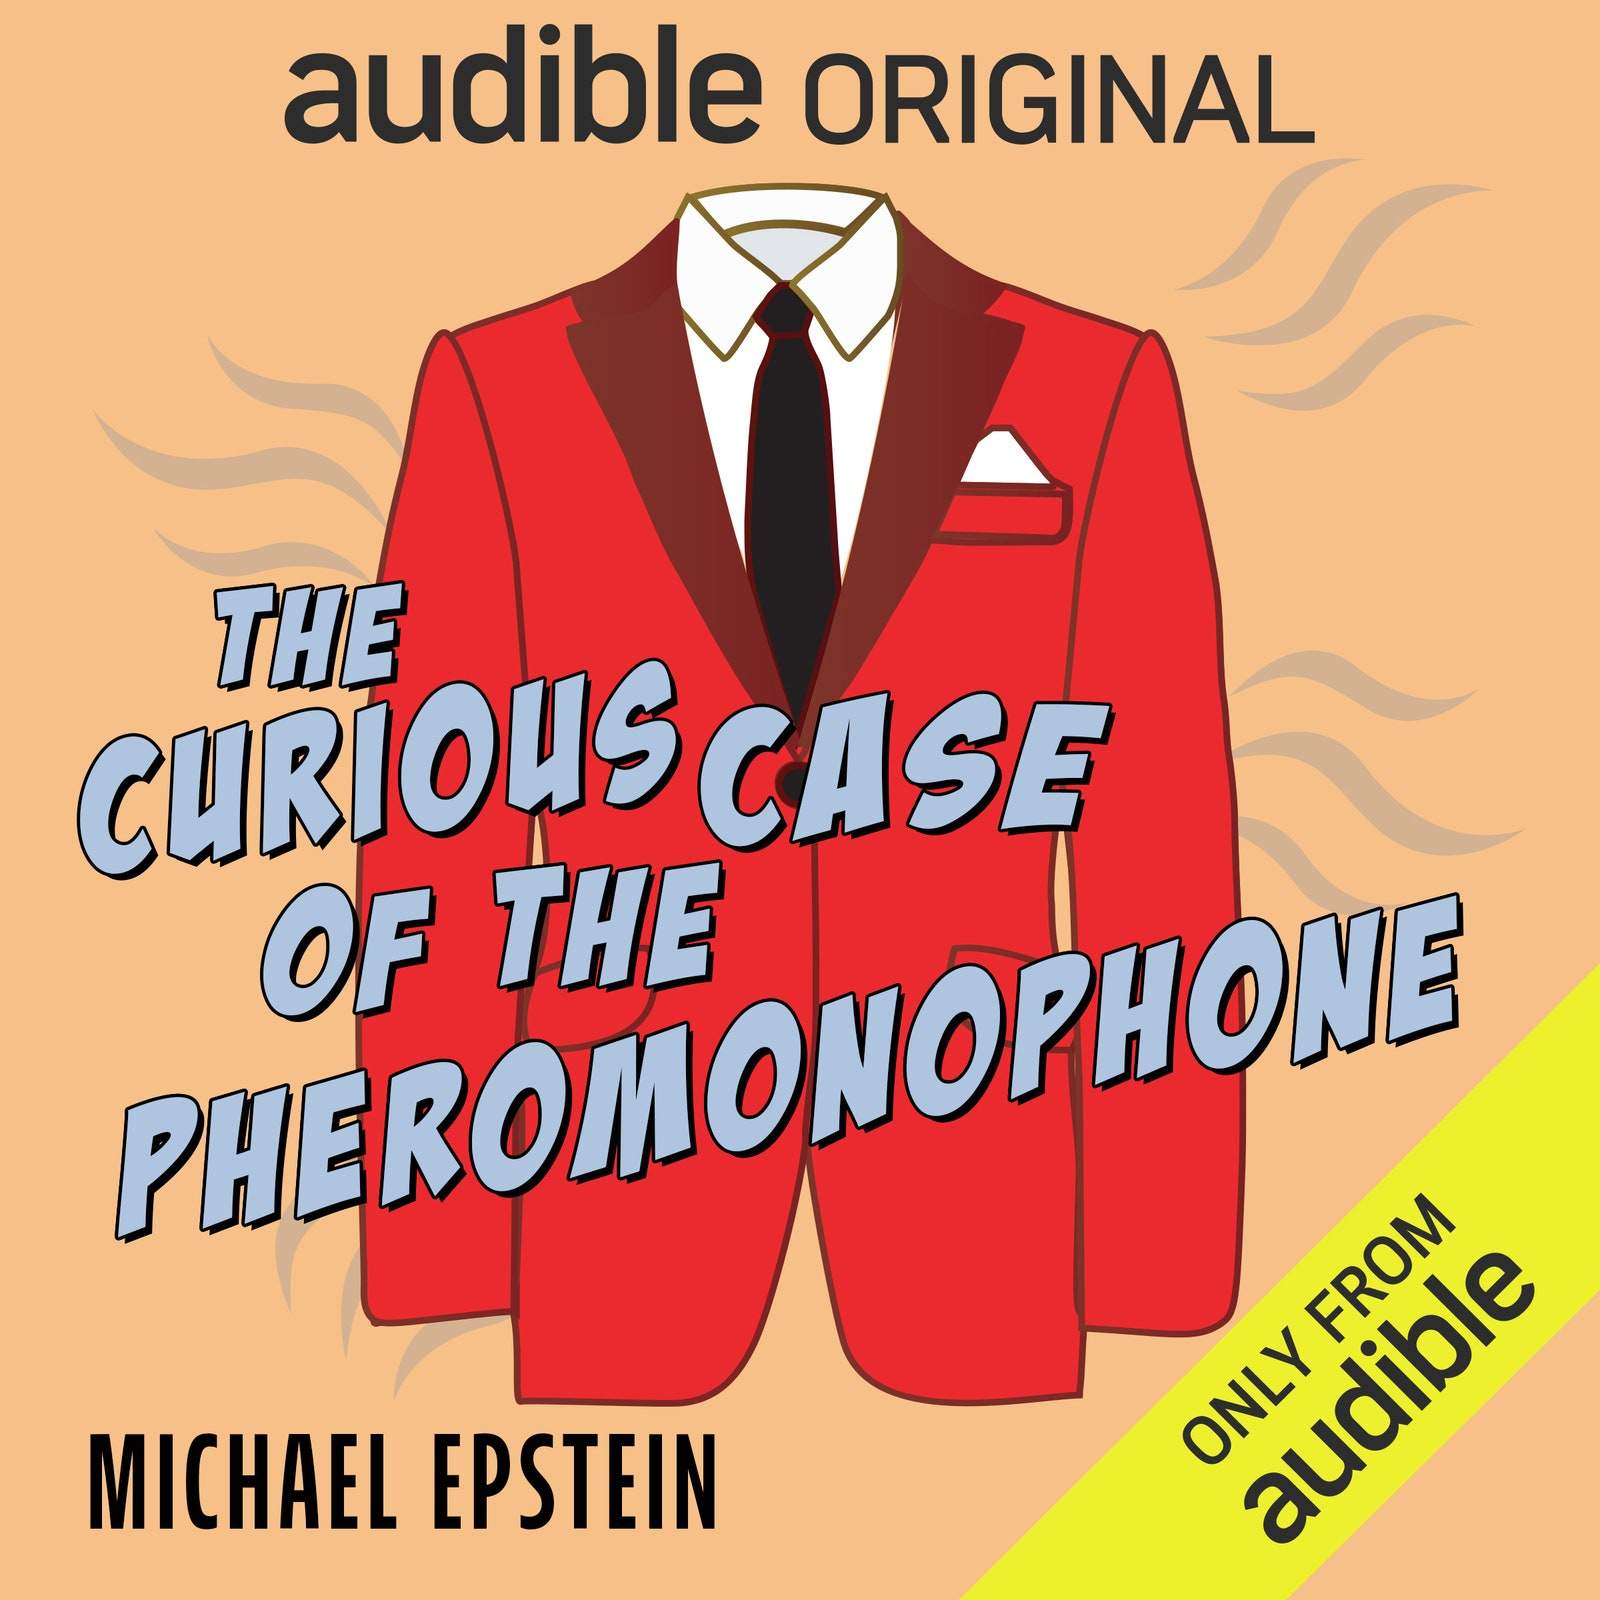 Cover of the book The Curious Case of The Pheromonophone featuring an illustration with a blazer collared shirt and tie